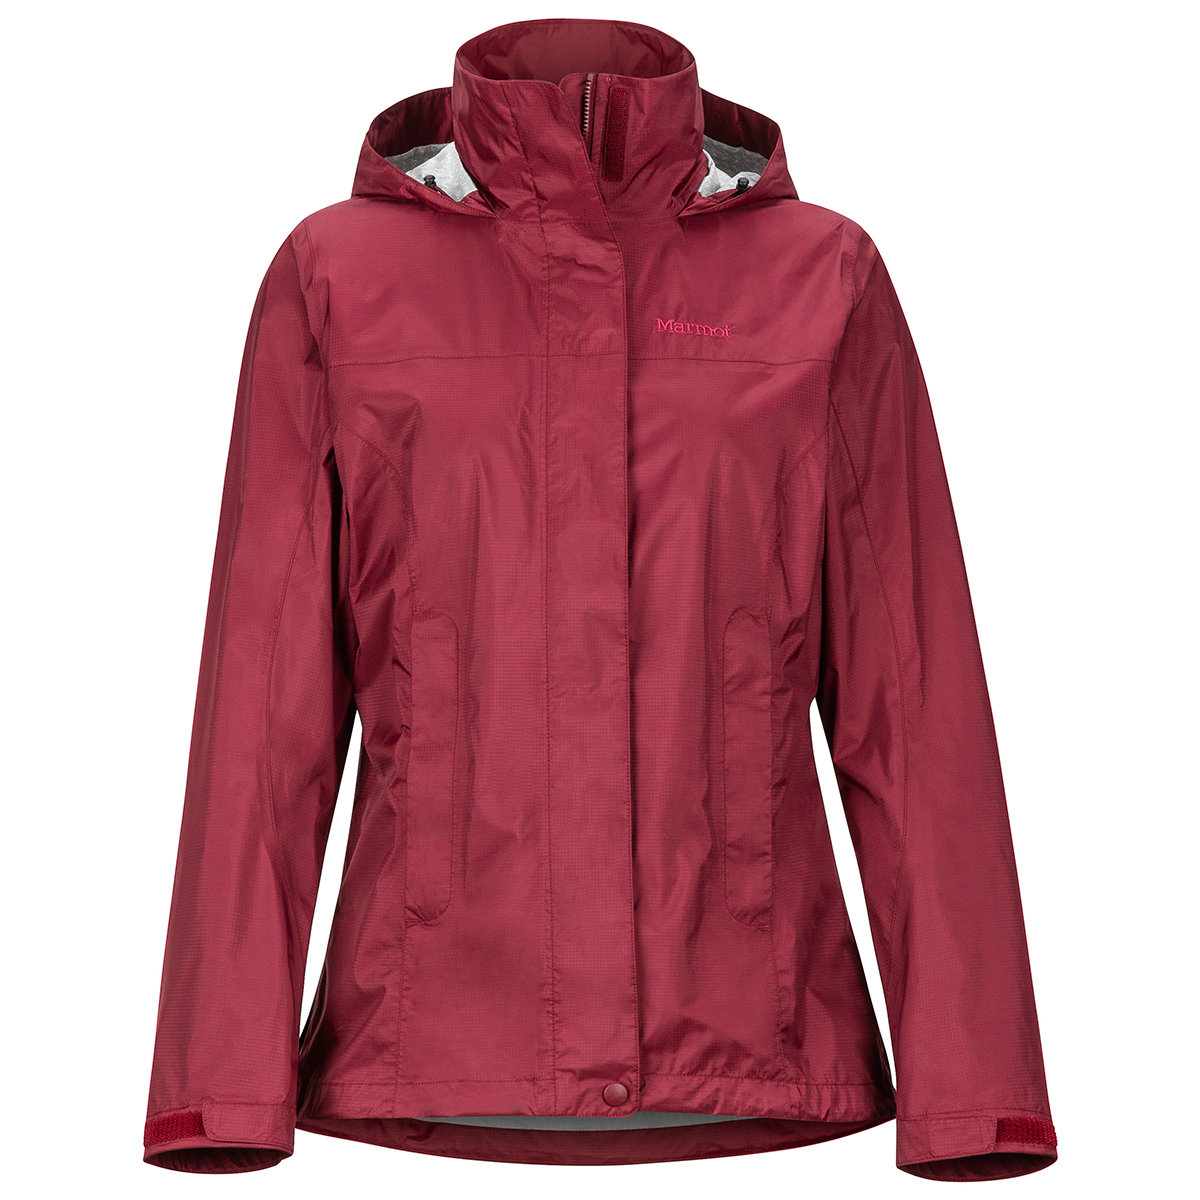 Marmot Women's Precip Eco Jacket - Red, M